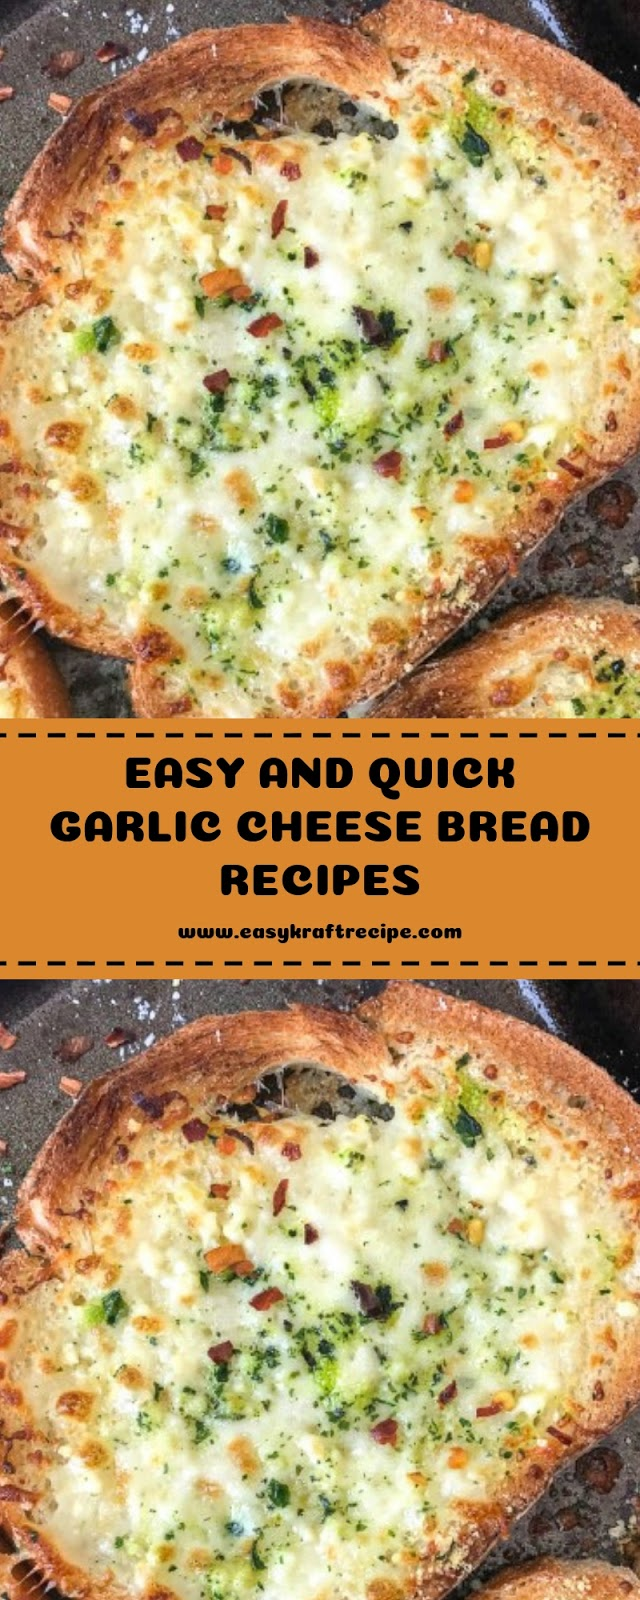 EASY AND QUICK GARLIC CHEESE BREAD